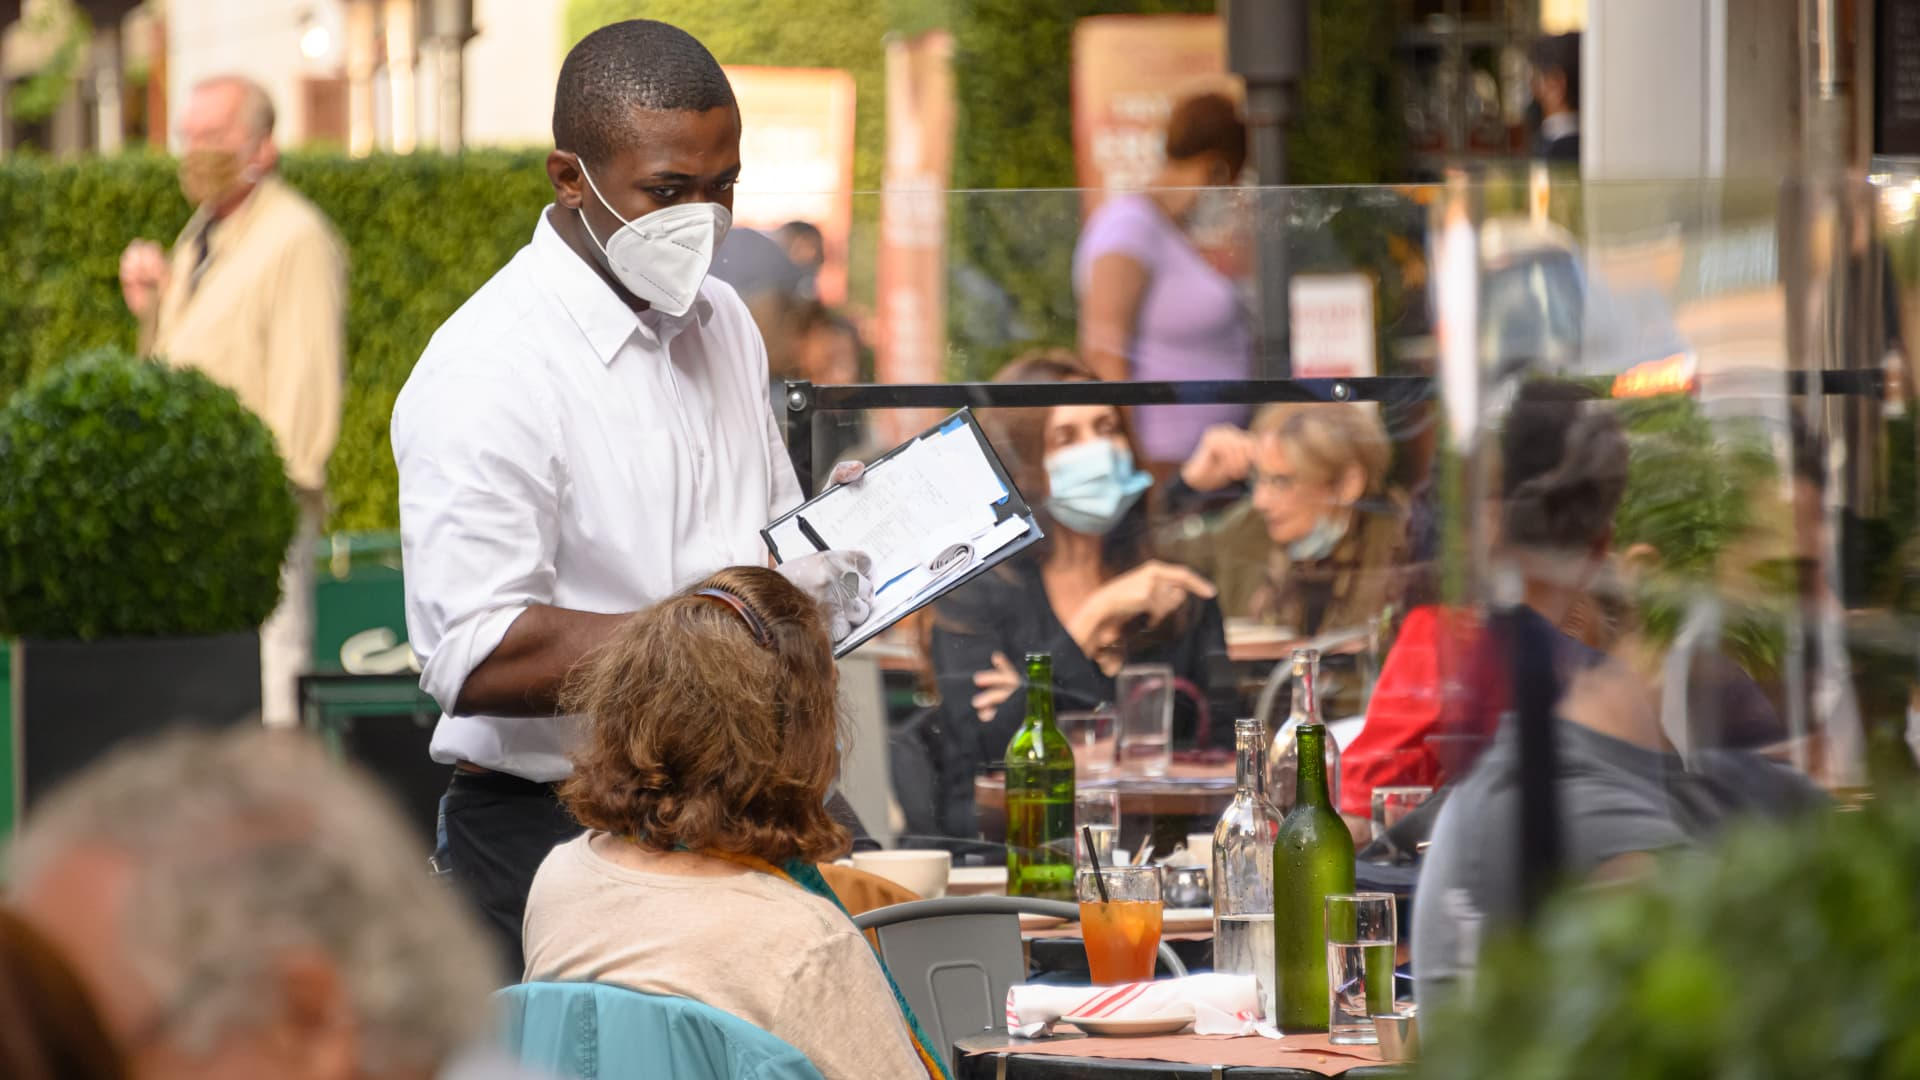 A New York City waiter wears a face mask at a restaurant on Manhattan's Upper West Side on Nov. 10, 2020.